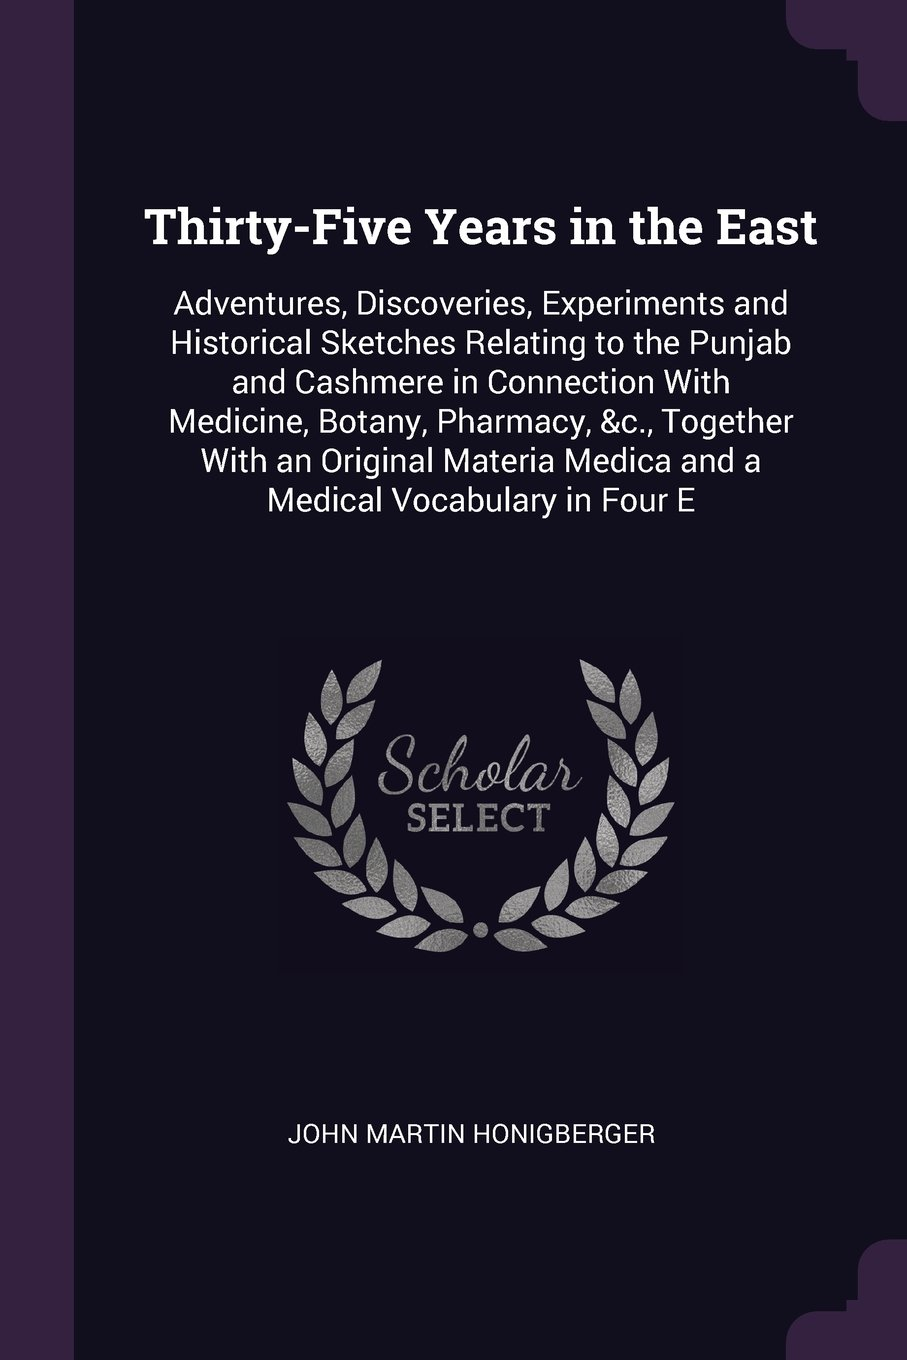 Thirty-Five Years in the East: Adventures, Discoveries, Experiments and Historical Sketches Relating to the Punjab and Cashmere in Connection With ... Medica and a Medical Vocabulary in Four E PDF